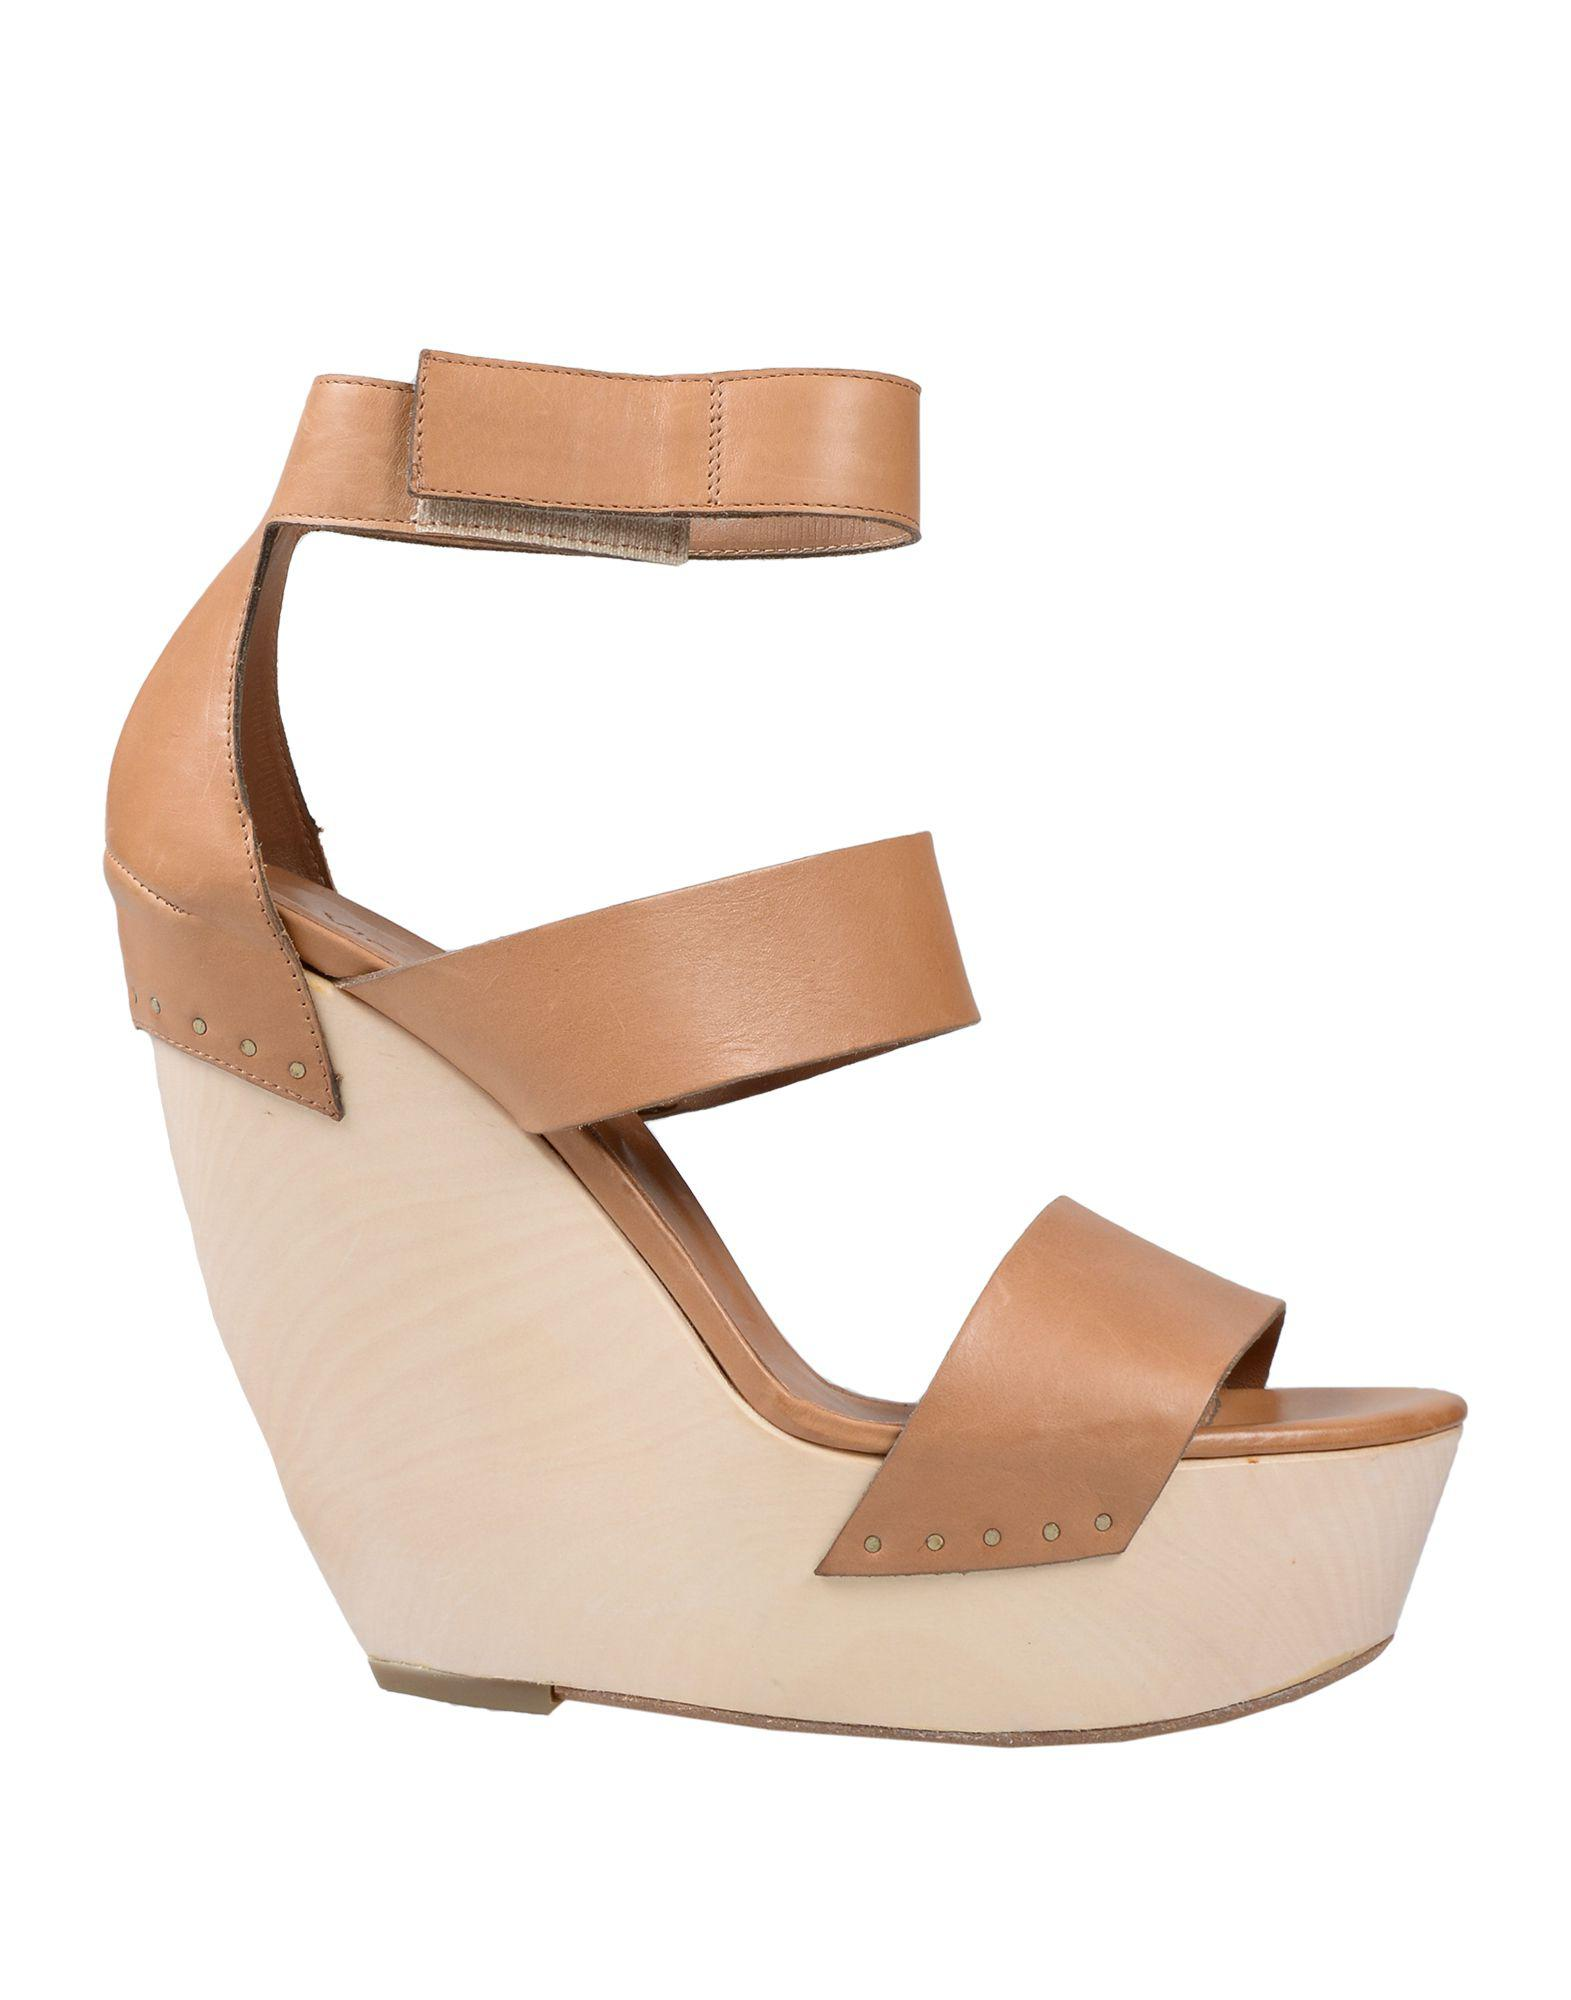 8d19e1b9f33 Vic Matié Sandals in Brown - Lyst